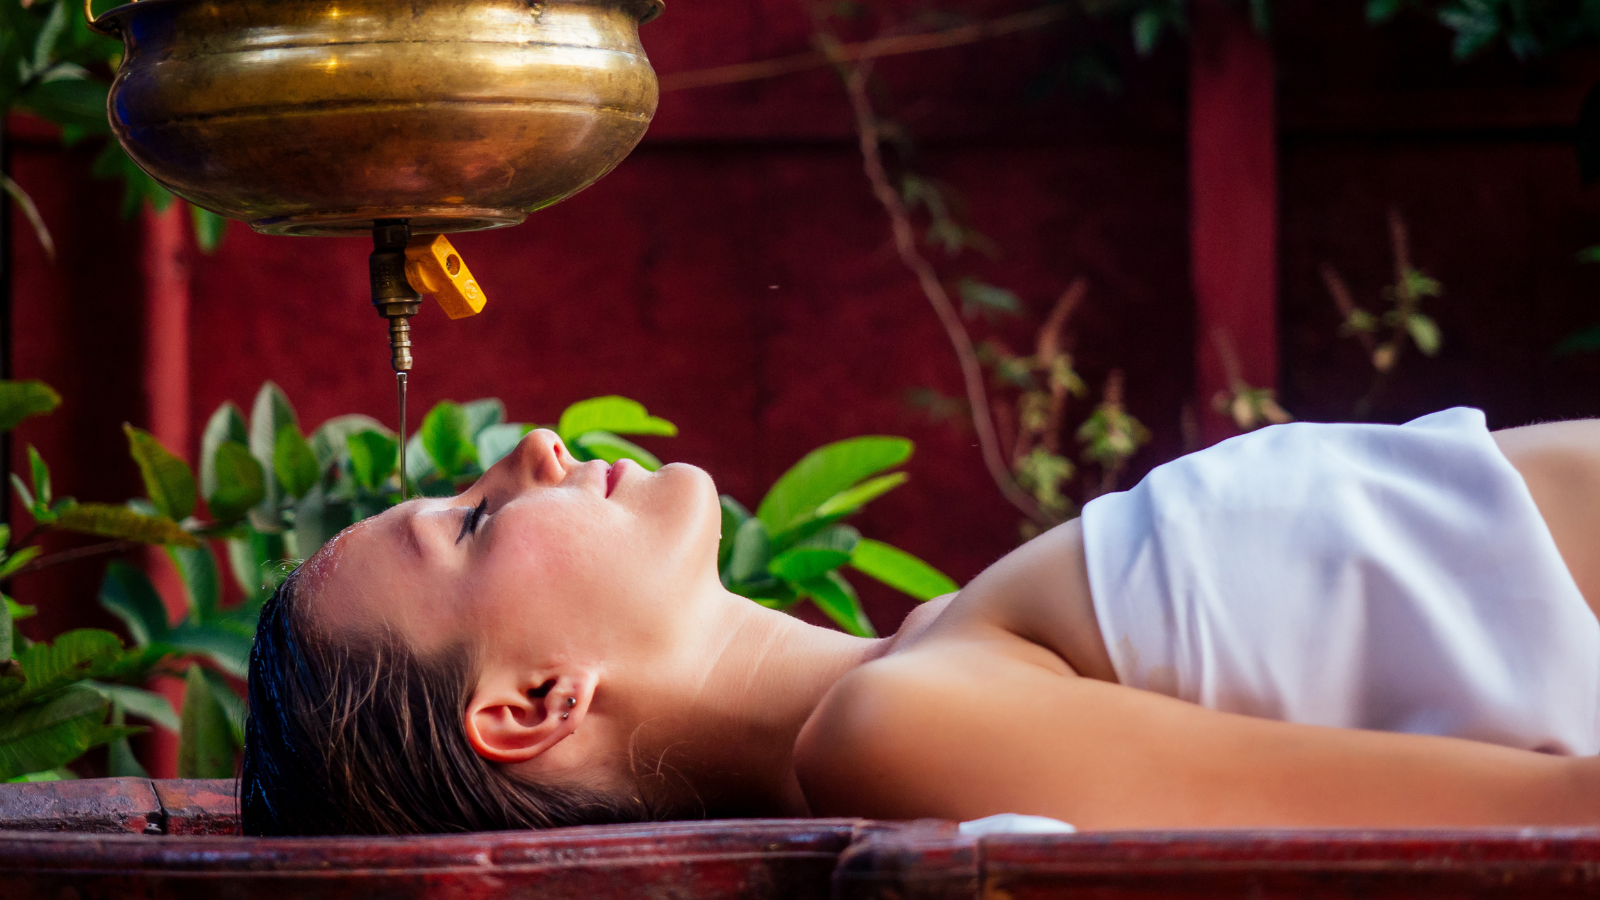 Ayurveda massage and alternative healing therapy especially good for Vata Dosha constitution